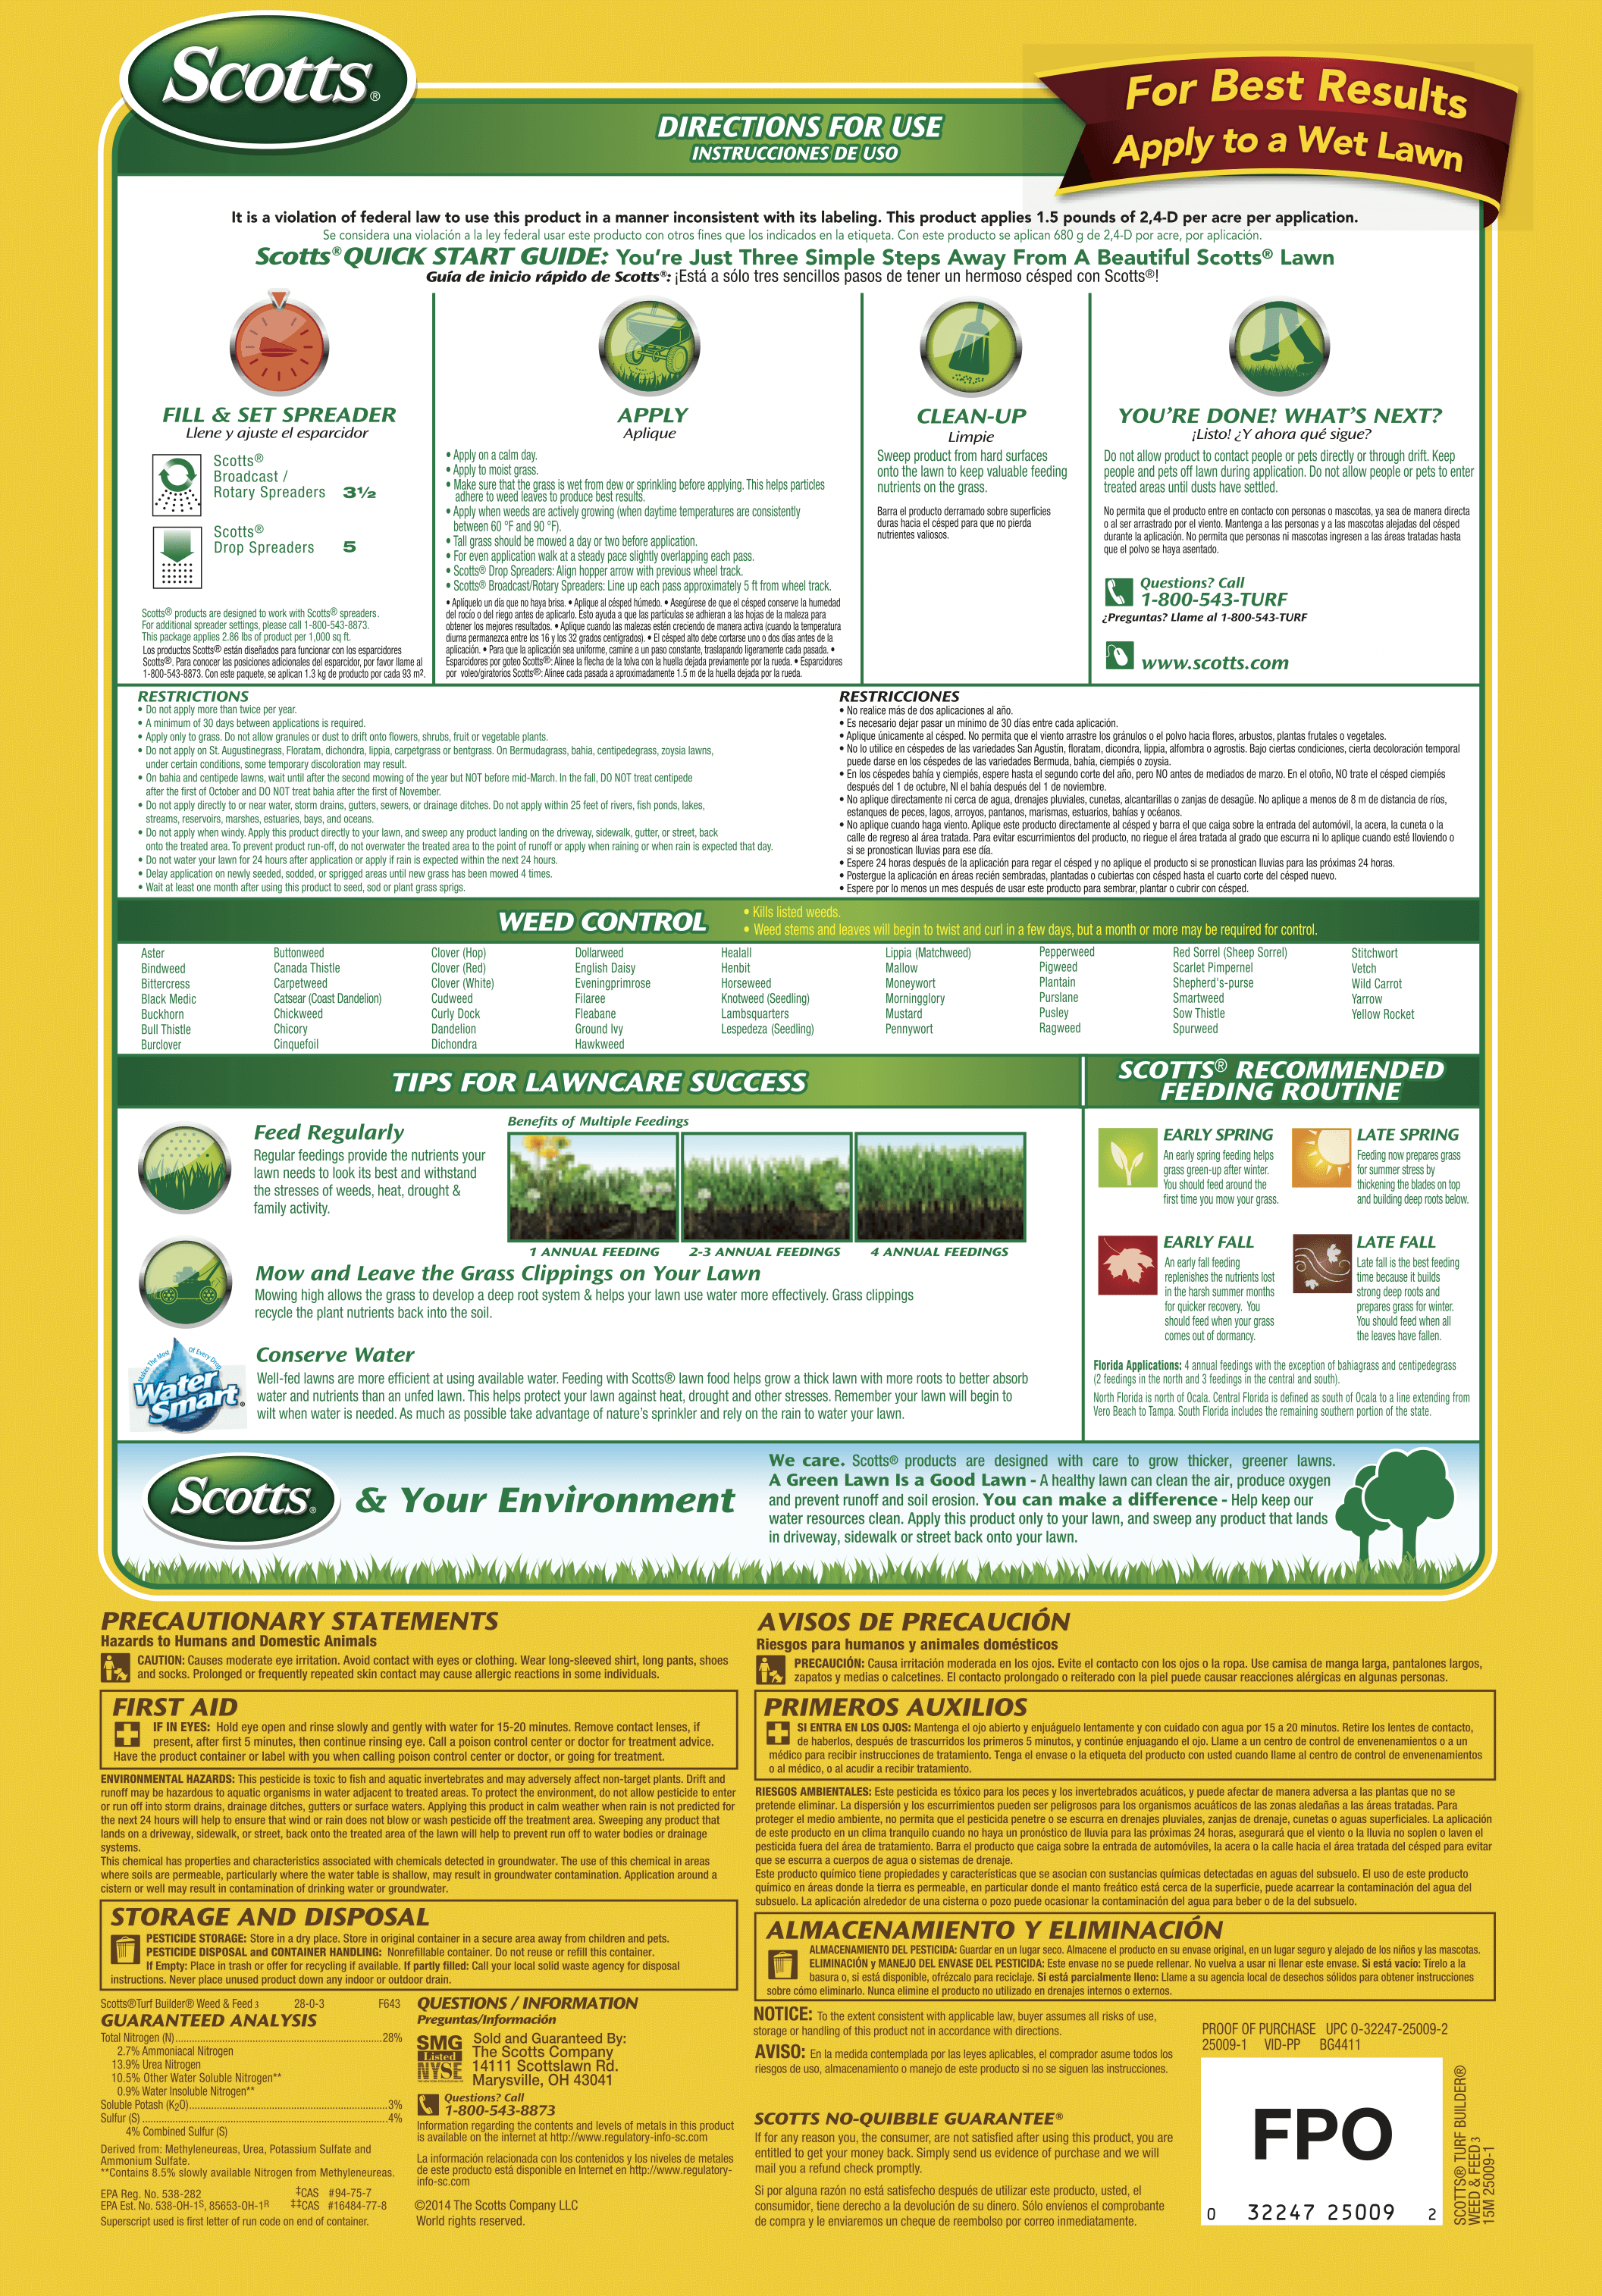 scotts fall weed and feed instructions